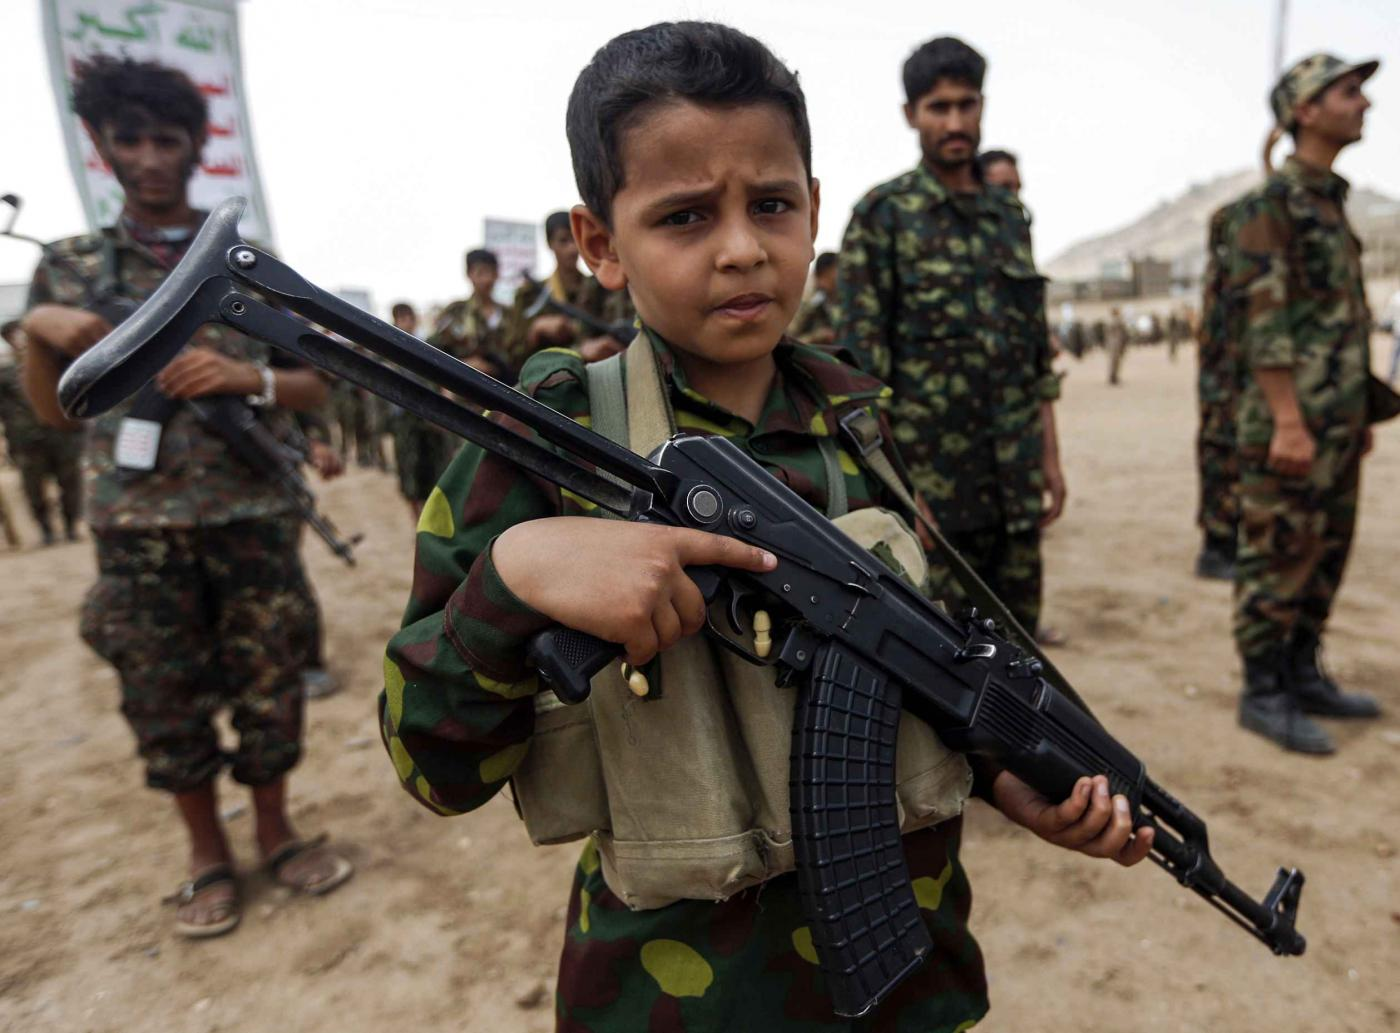 Meet the child soldiers of Yemen, sent into battle by adults | Middle East  Eye